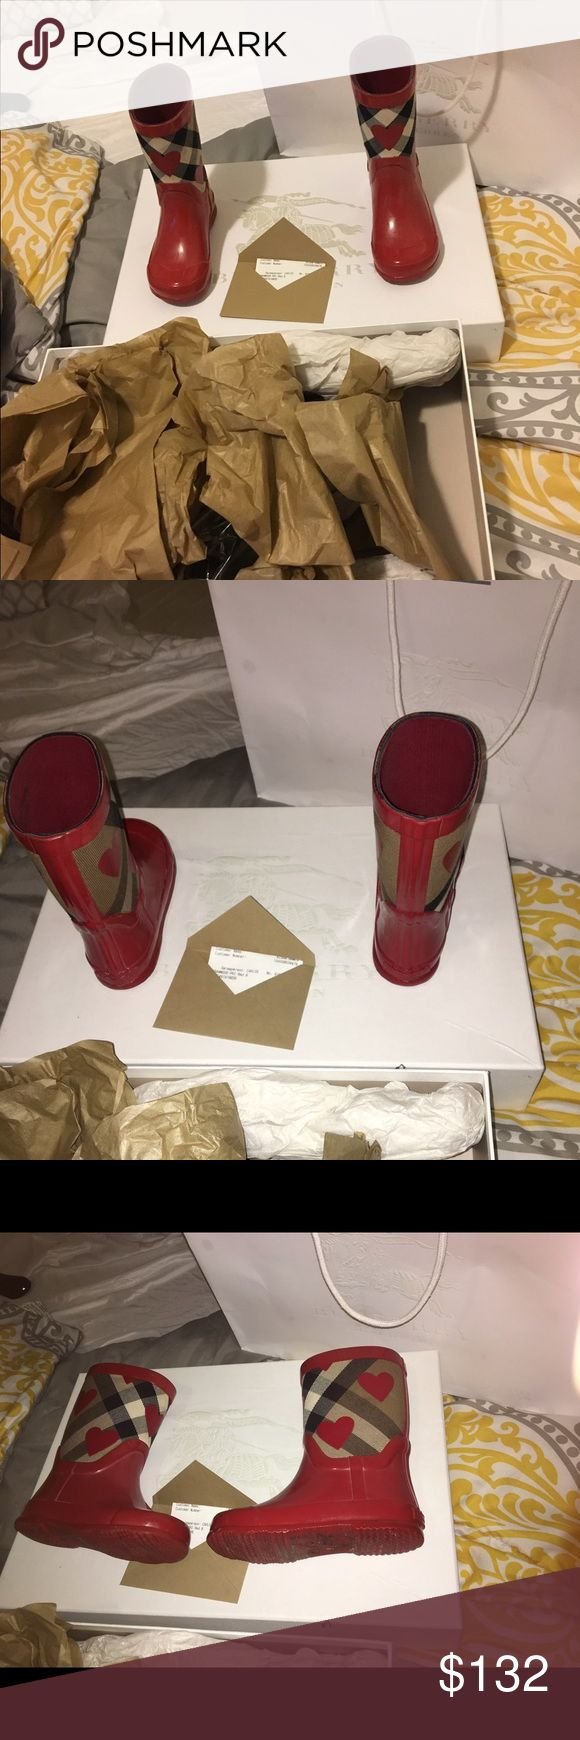 Burberry toddler rain boots Beautiful pair of Authentic Burberry toddler Rain Boots worn only twice was purchased 11/17/2016 Burberry Shoes Rain & Snow Boots